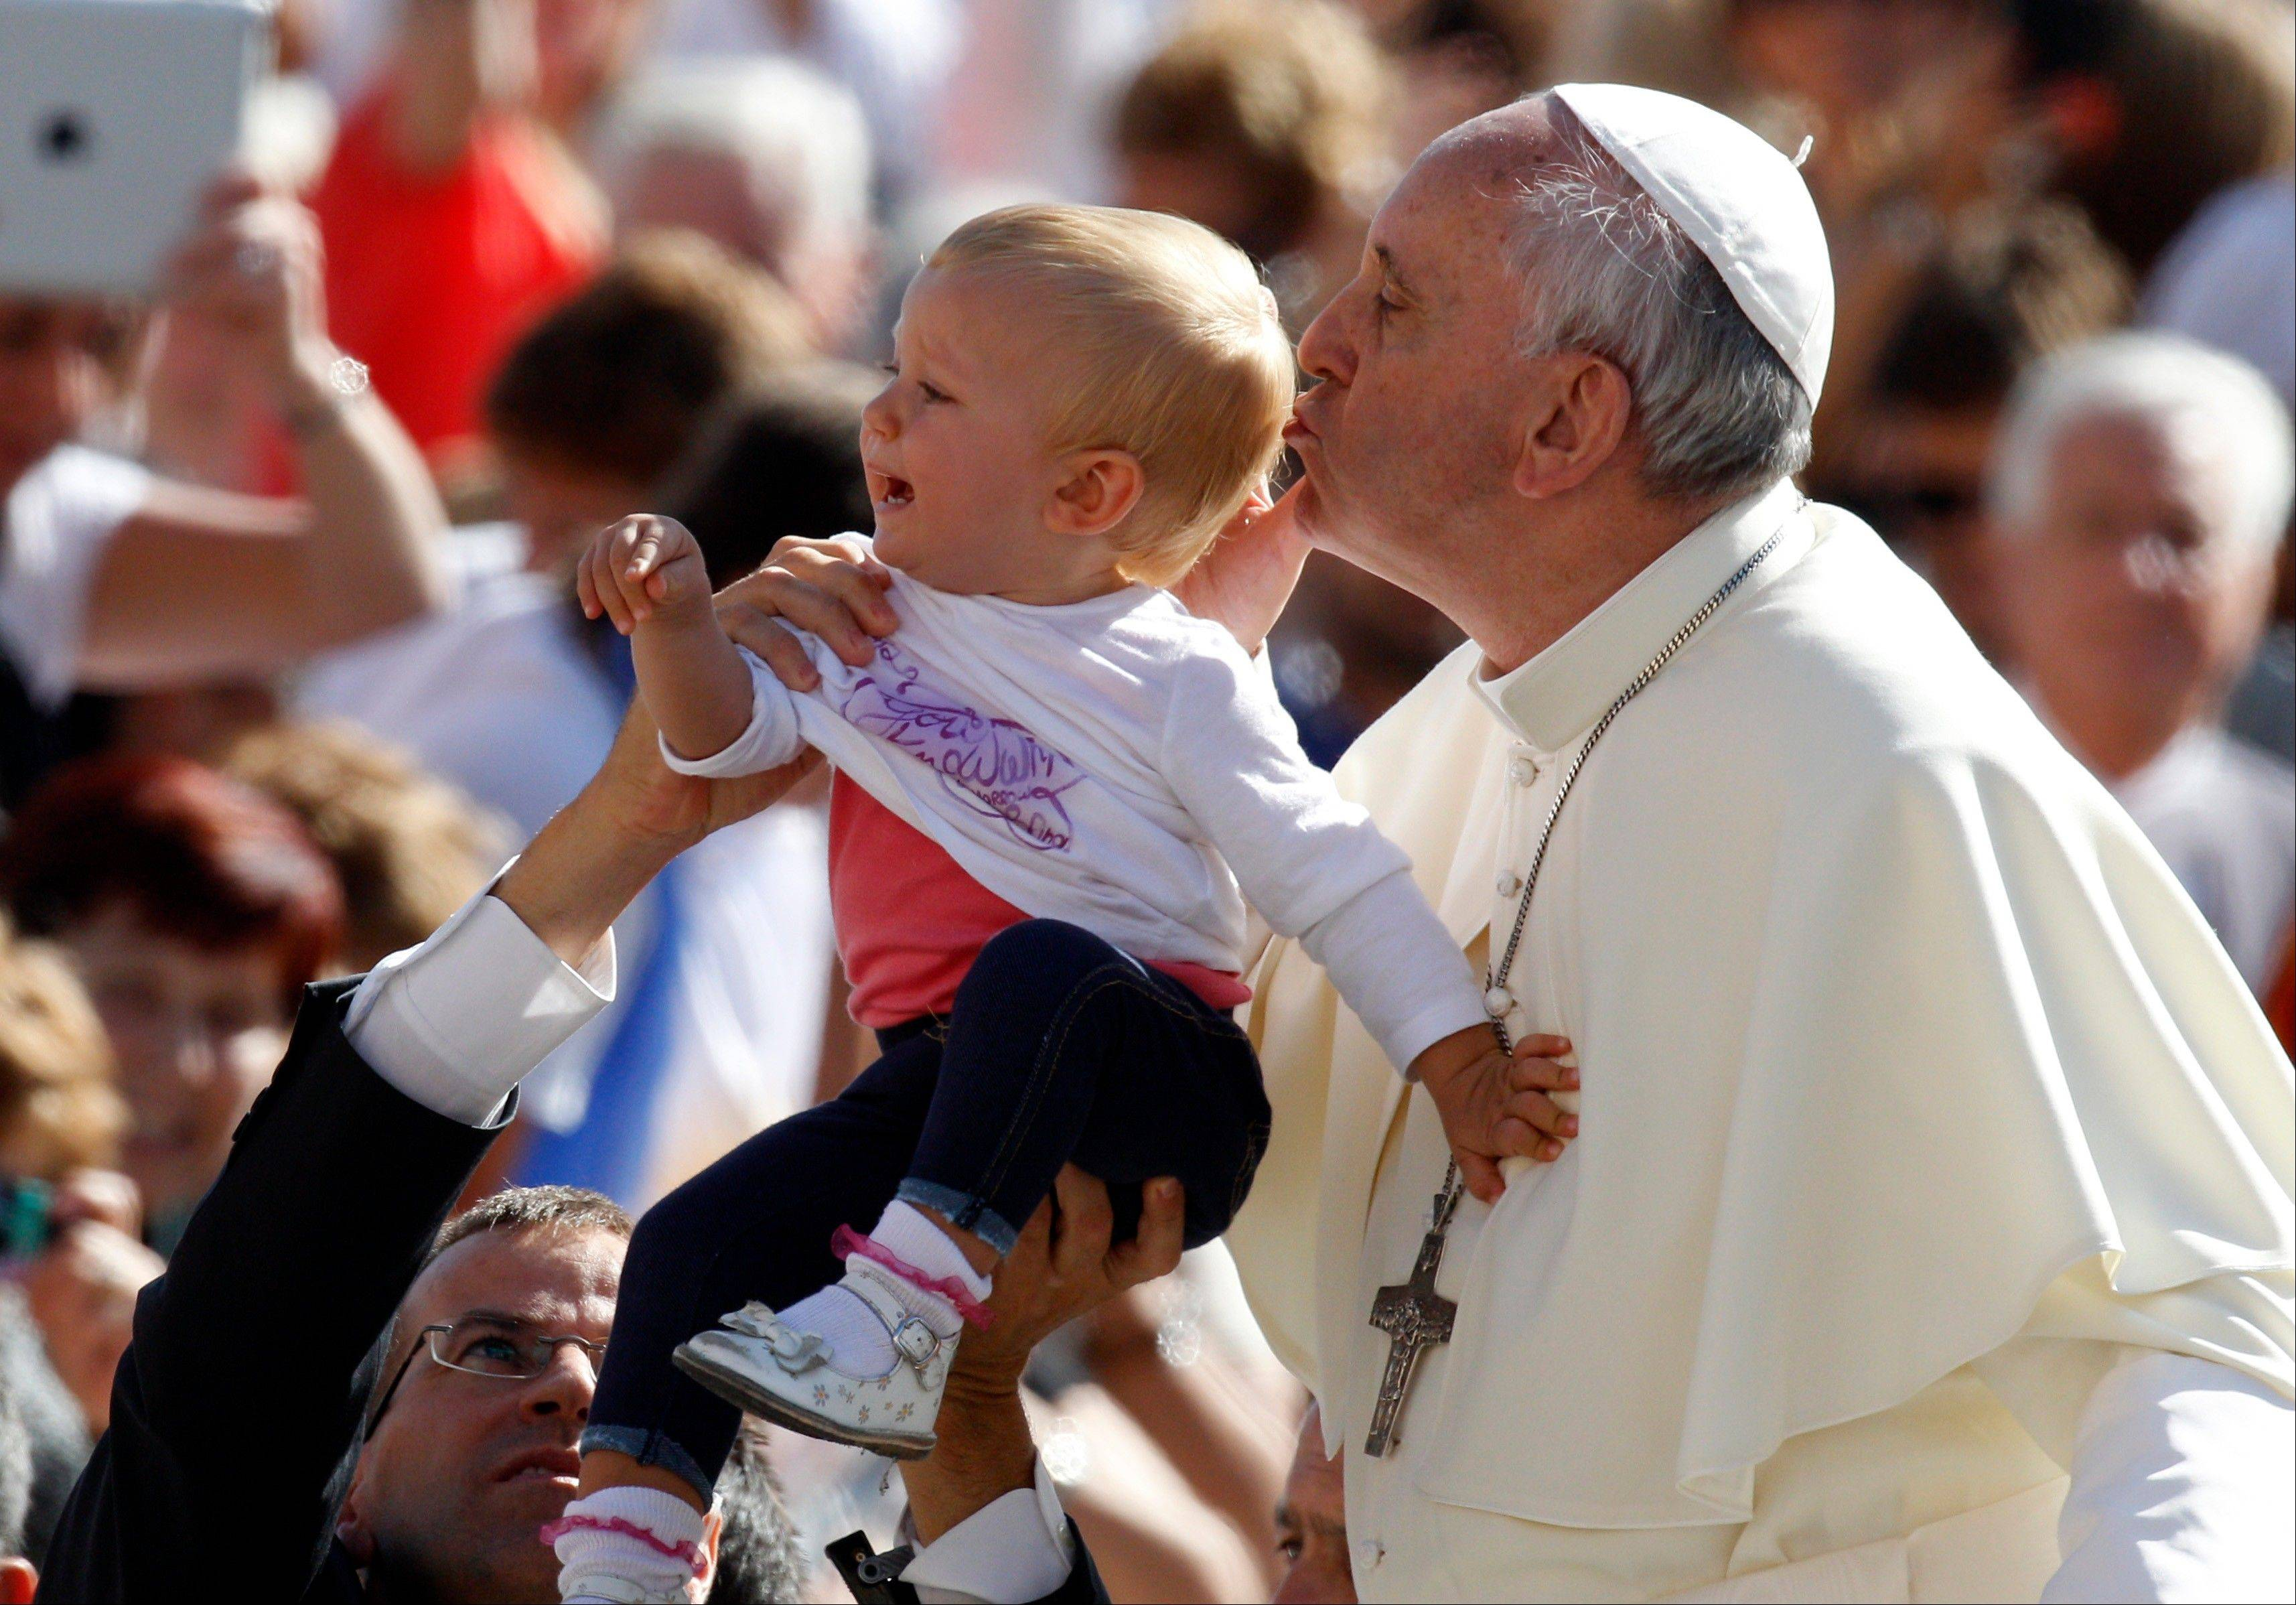 Pope Francis kisses a child as he arrives for his weekly general audience in St. Peter's Square at the Vatican, Wednesday, Sept. 18, 2013.